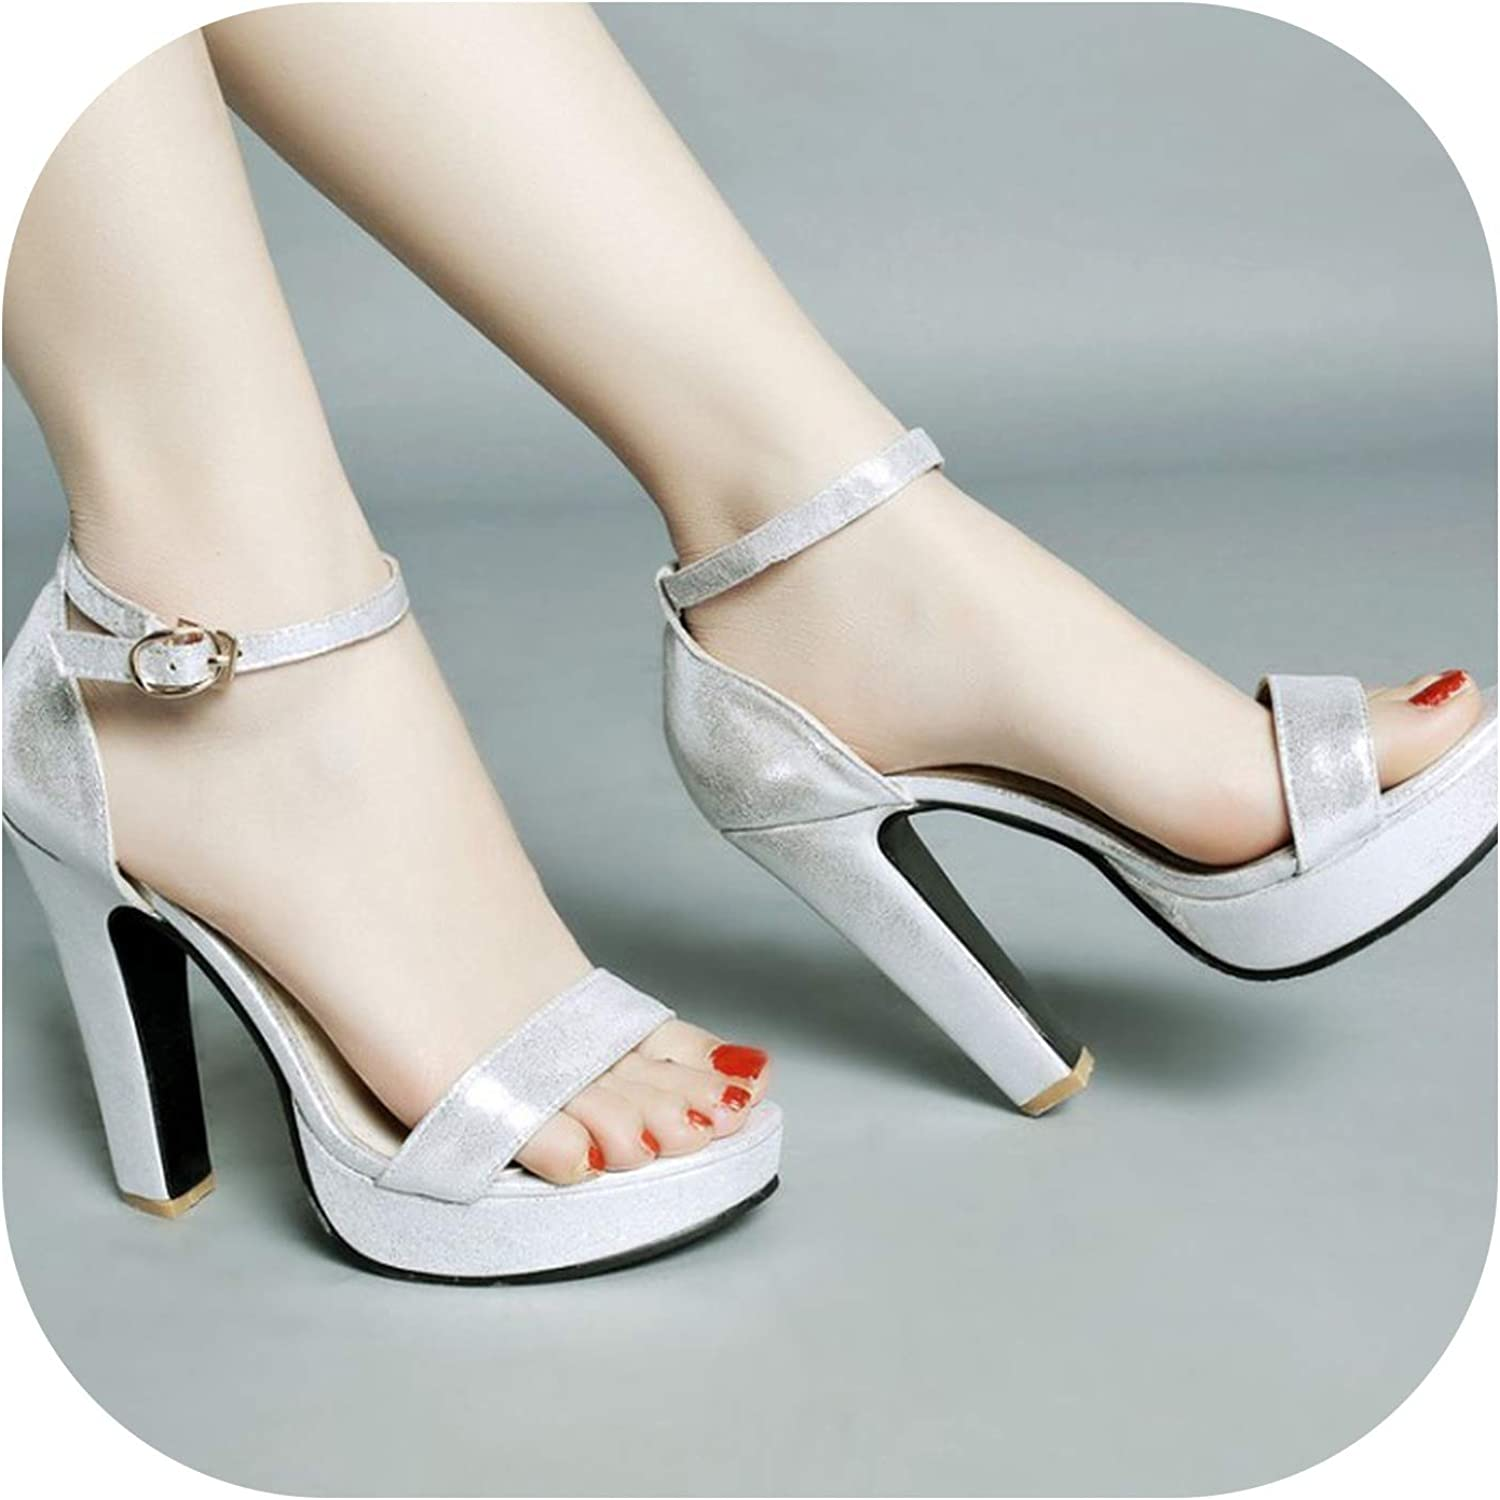 Buckle with New Sandals with high Heel shoes Rome shoes